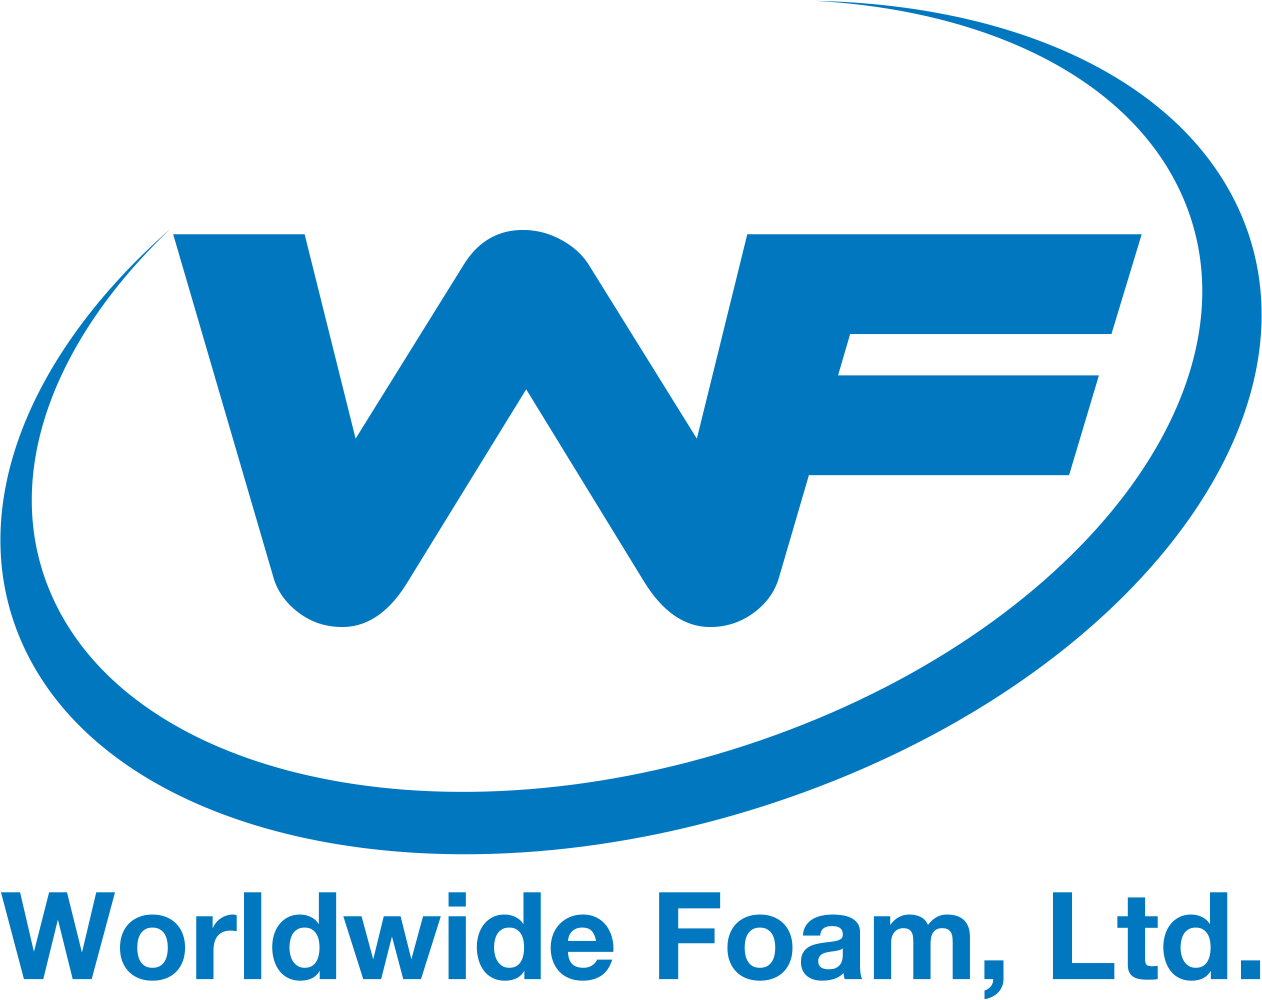 Worldwide Foam, Ltd.